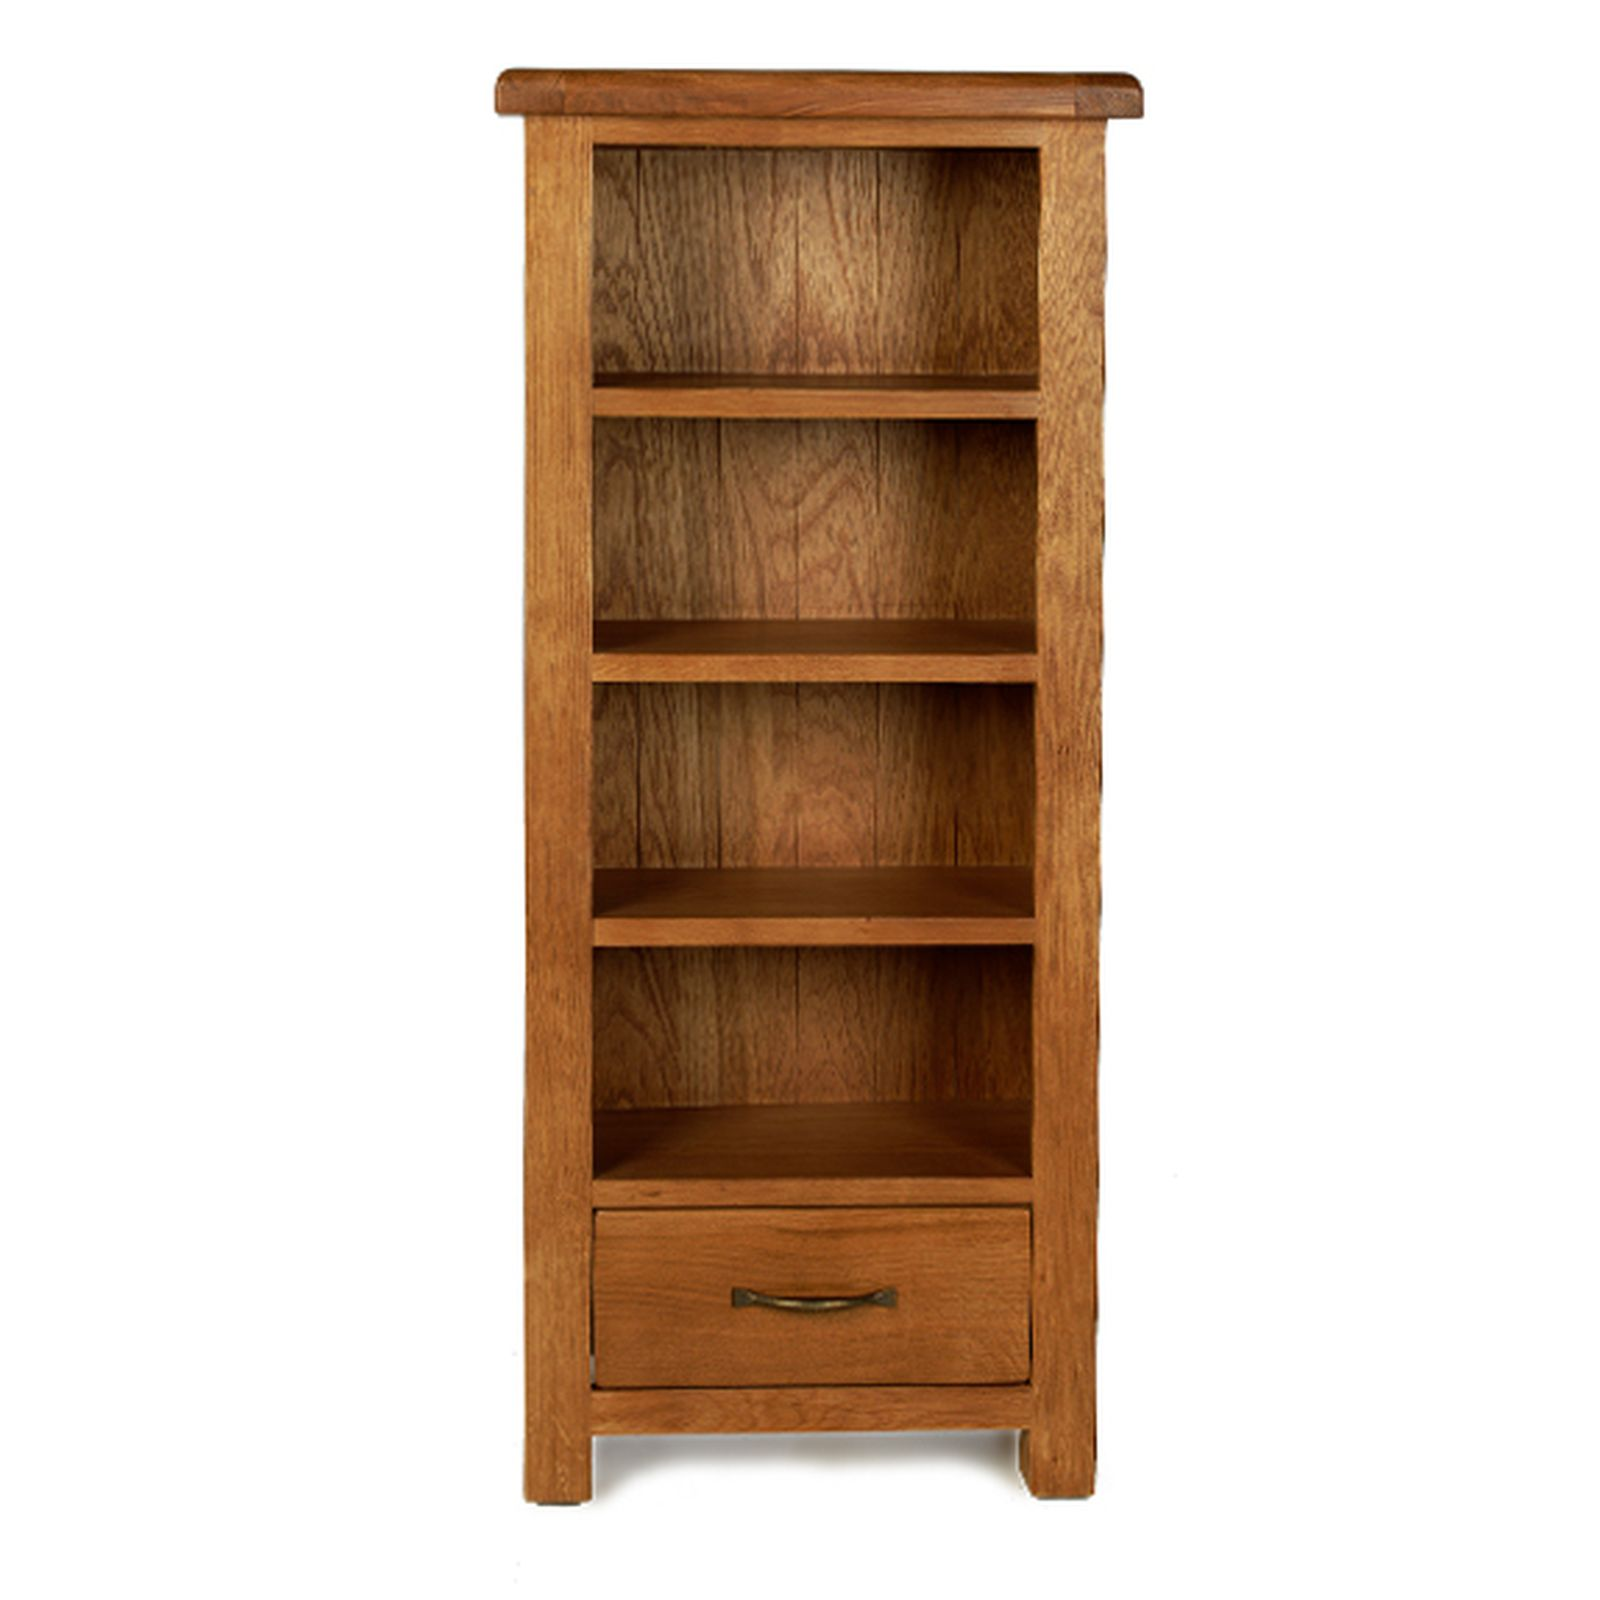 Rushden solid oak furniture cd dvd storage cabinet rack ebay